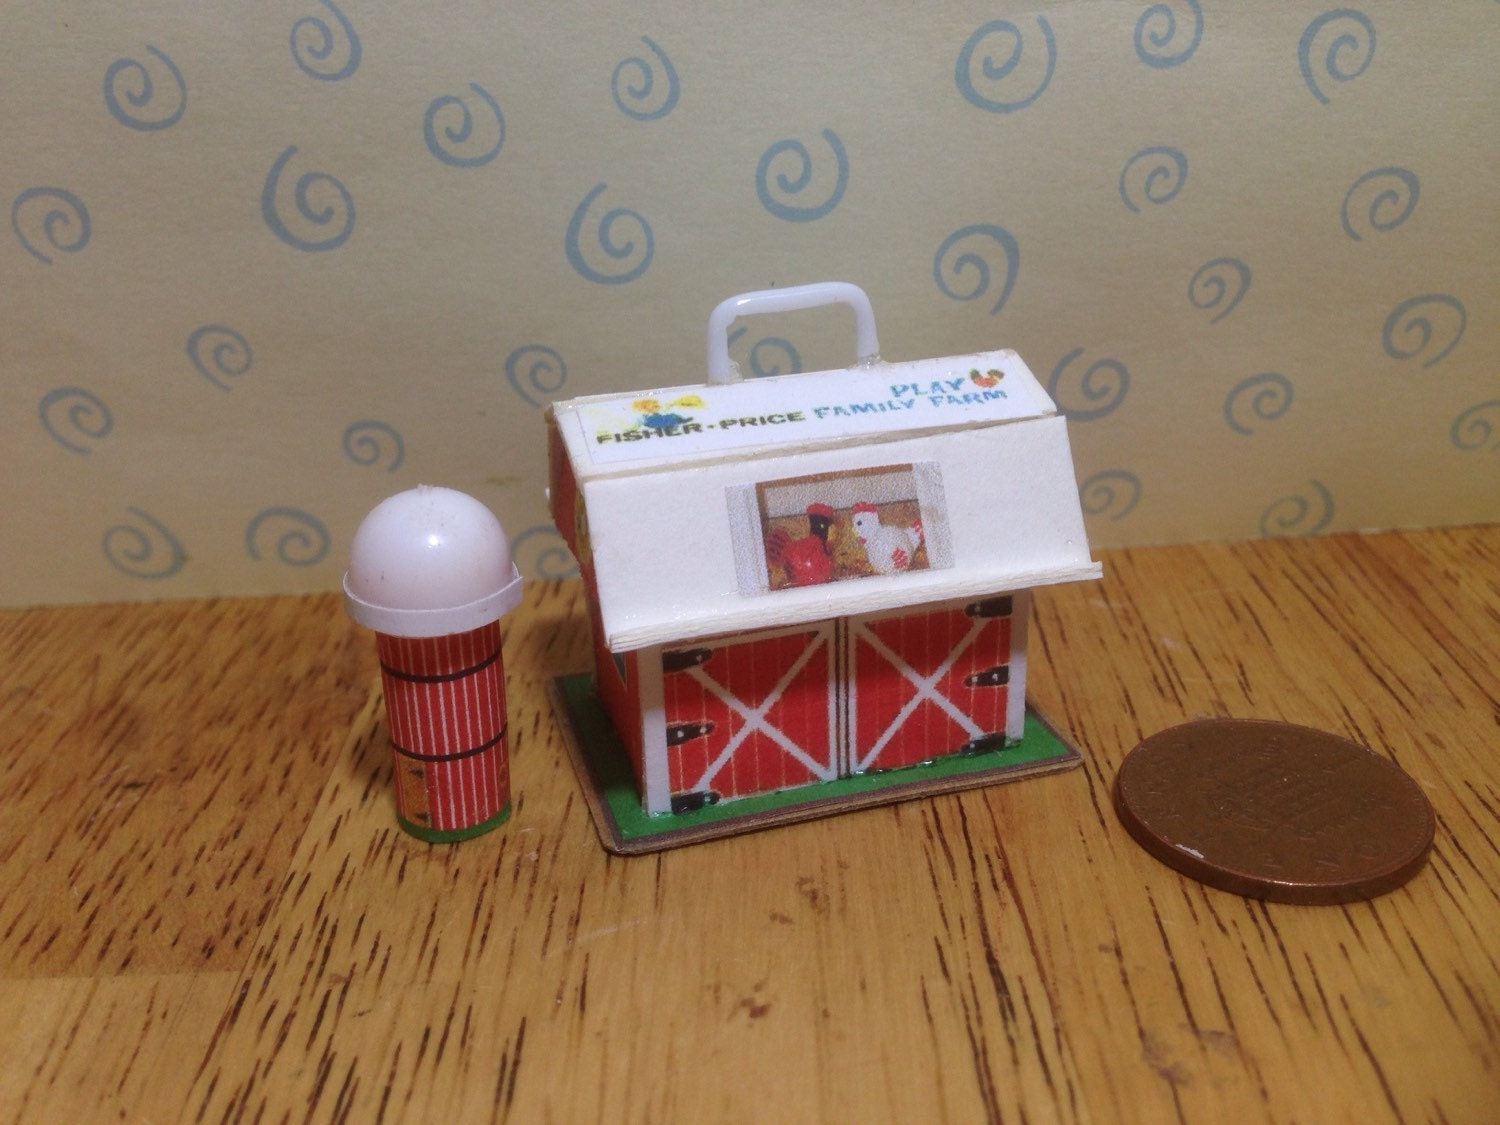 Hand made Dolls house Miniature replica vintage fisher price play family farmbarn and silo NEW  112 scale